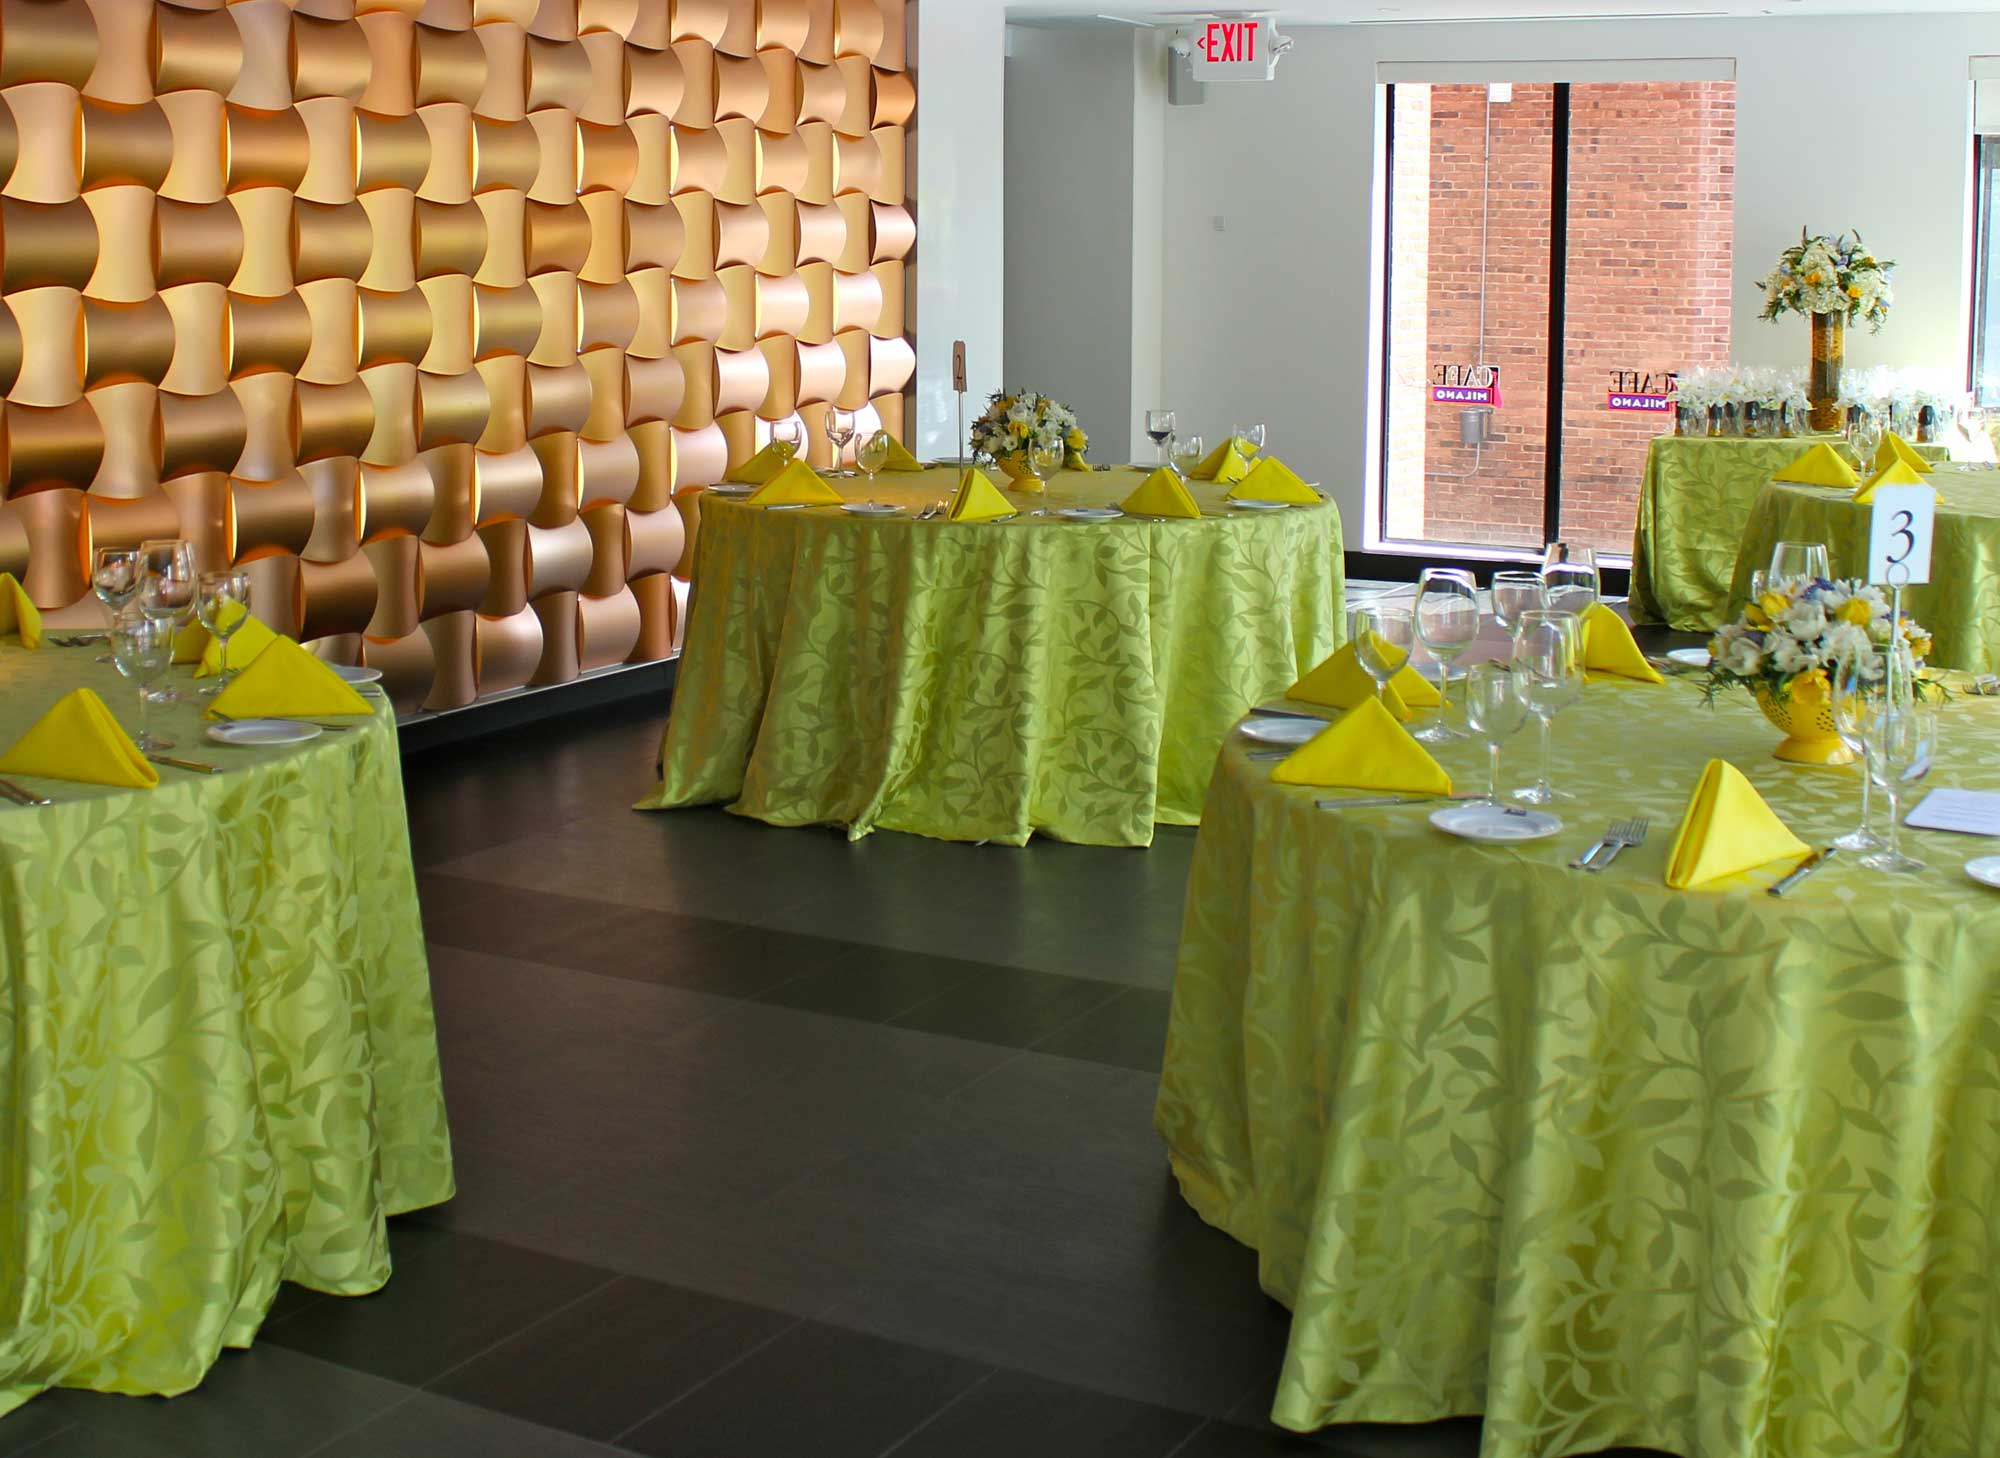 Cafe Milano event space in Washington DC, Maryland, Virginia, DC Area